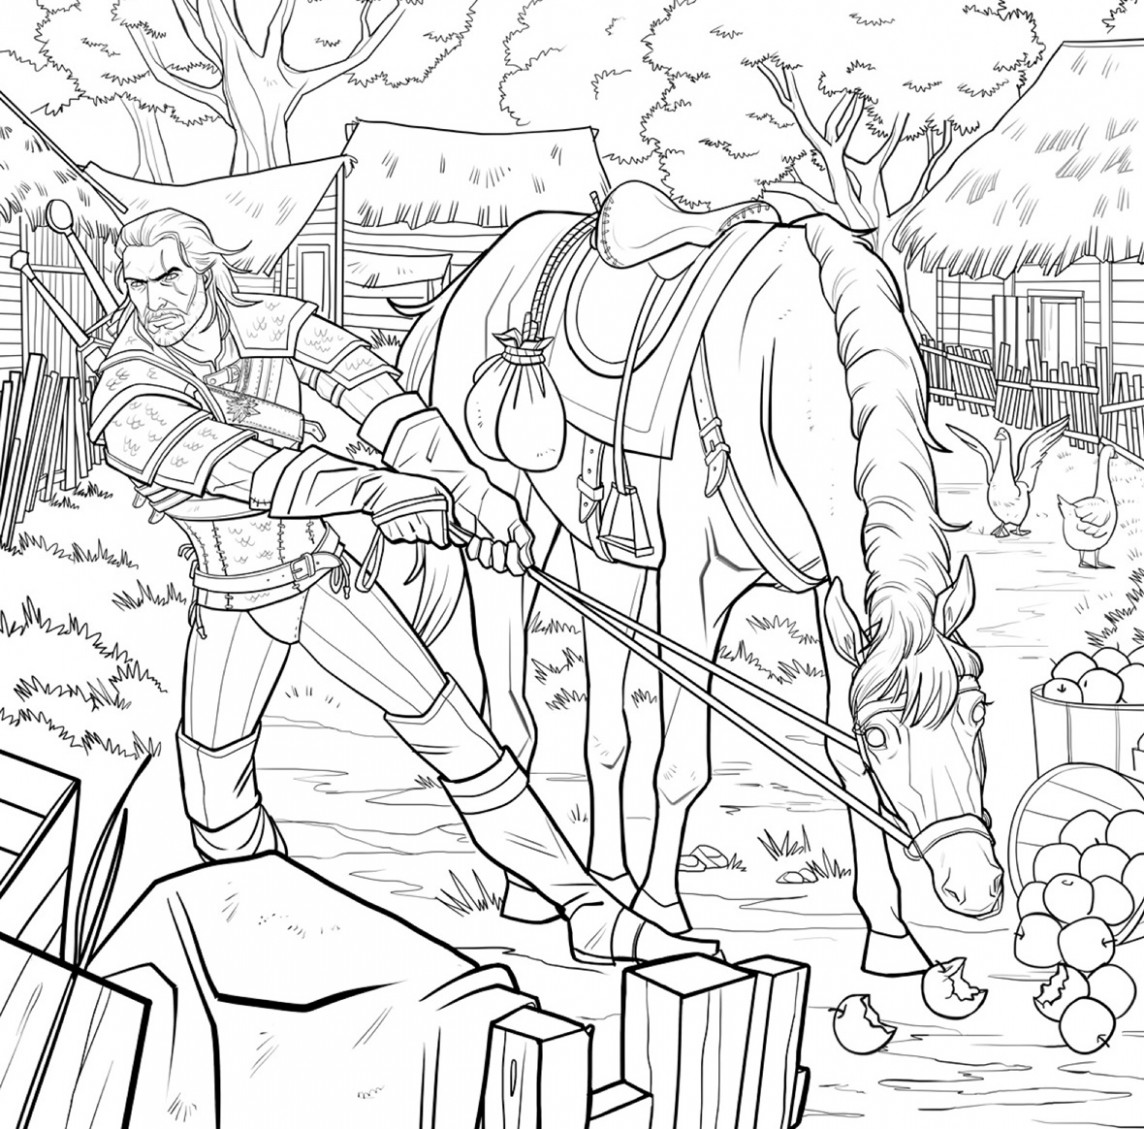 Finally, the Witcher Gets Its Own Coloring Book Complete With Bath ...